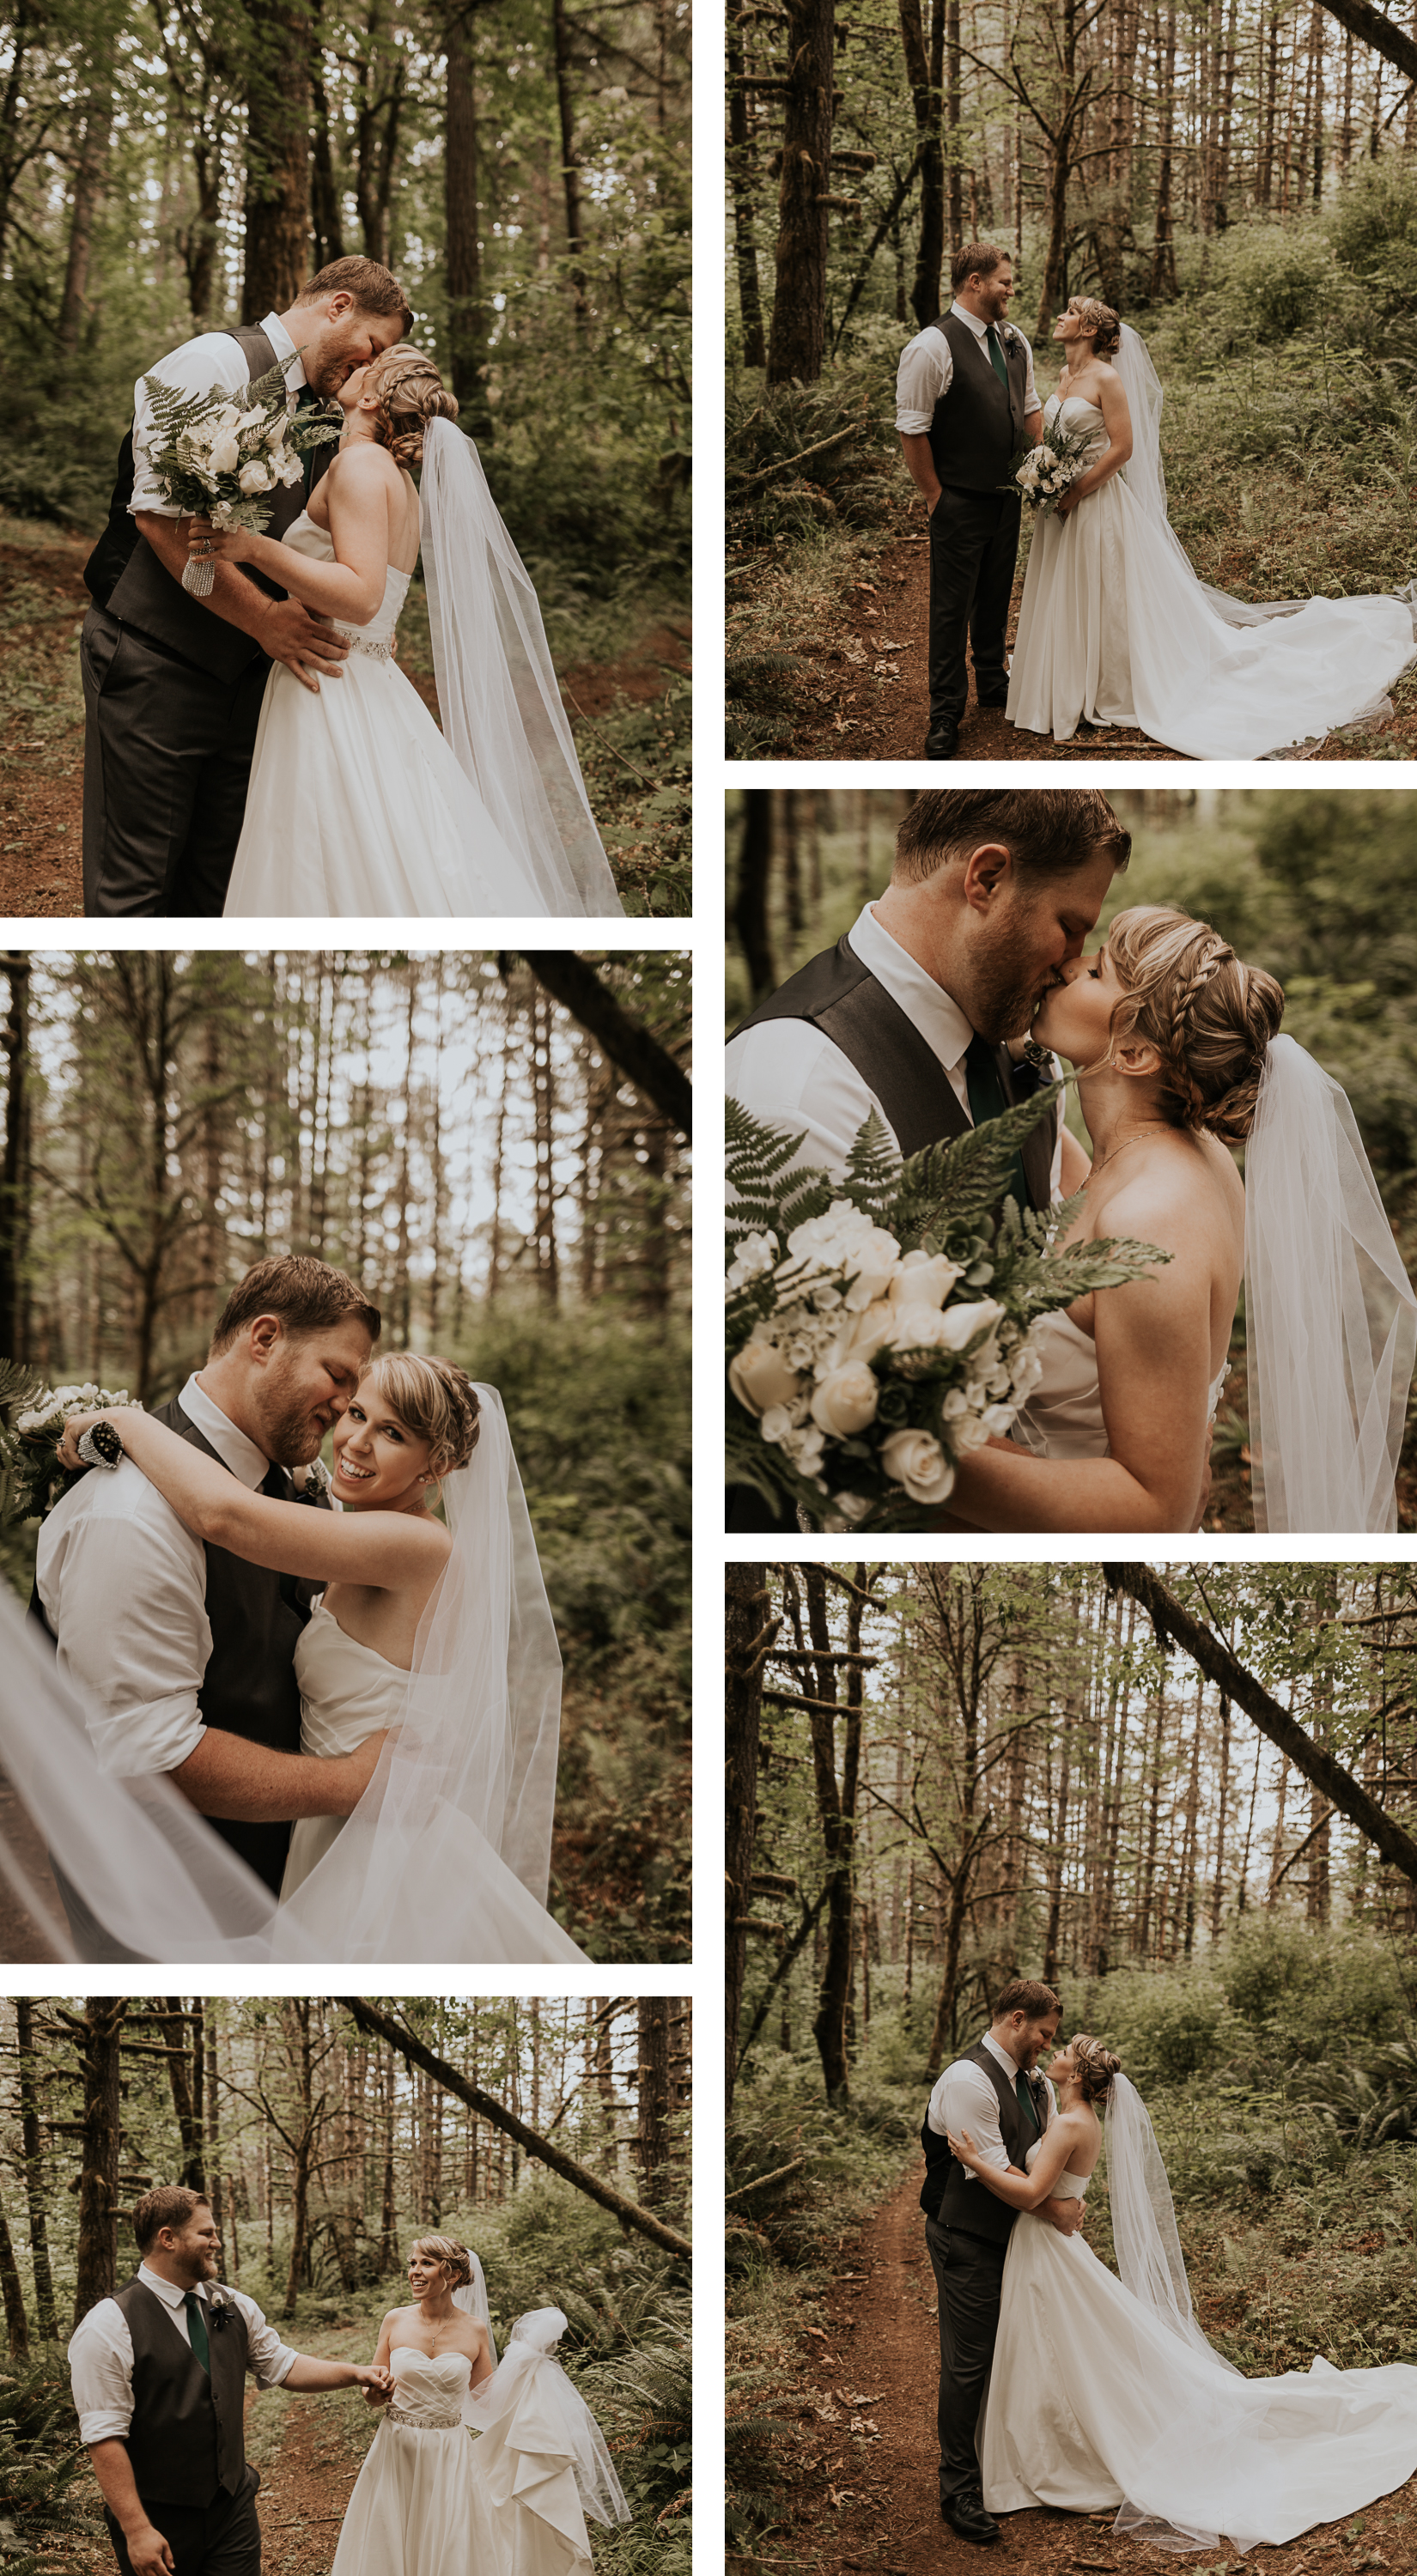 After we took a few bride and groom photos in the woods, they wanted to say a prayer together by the pond. the sweetest tears in these photos...